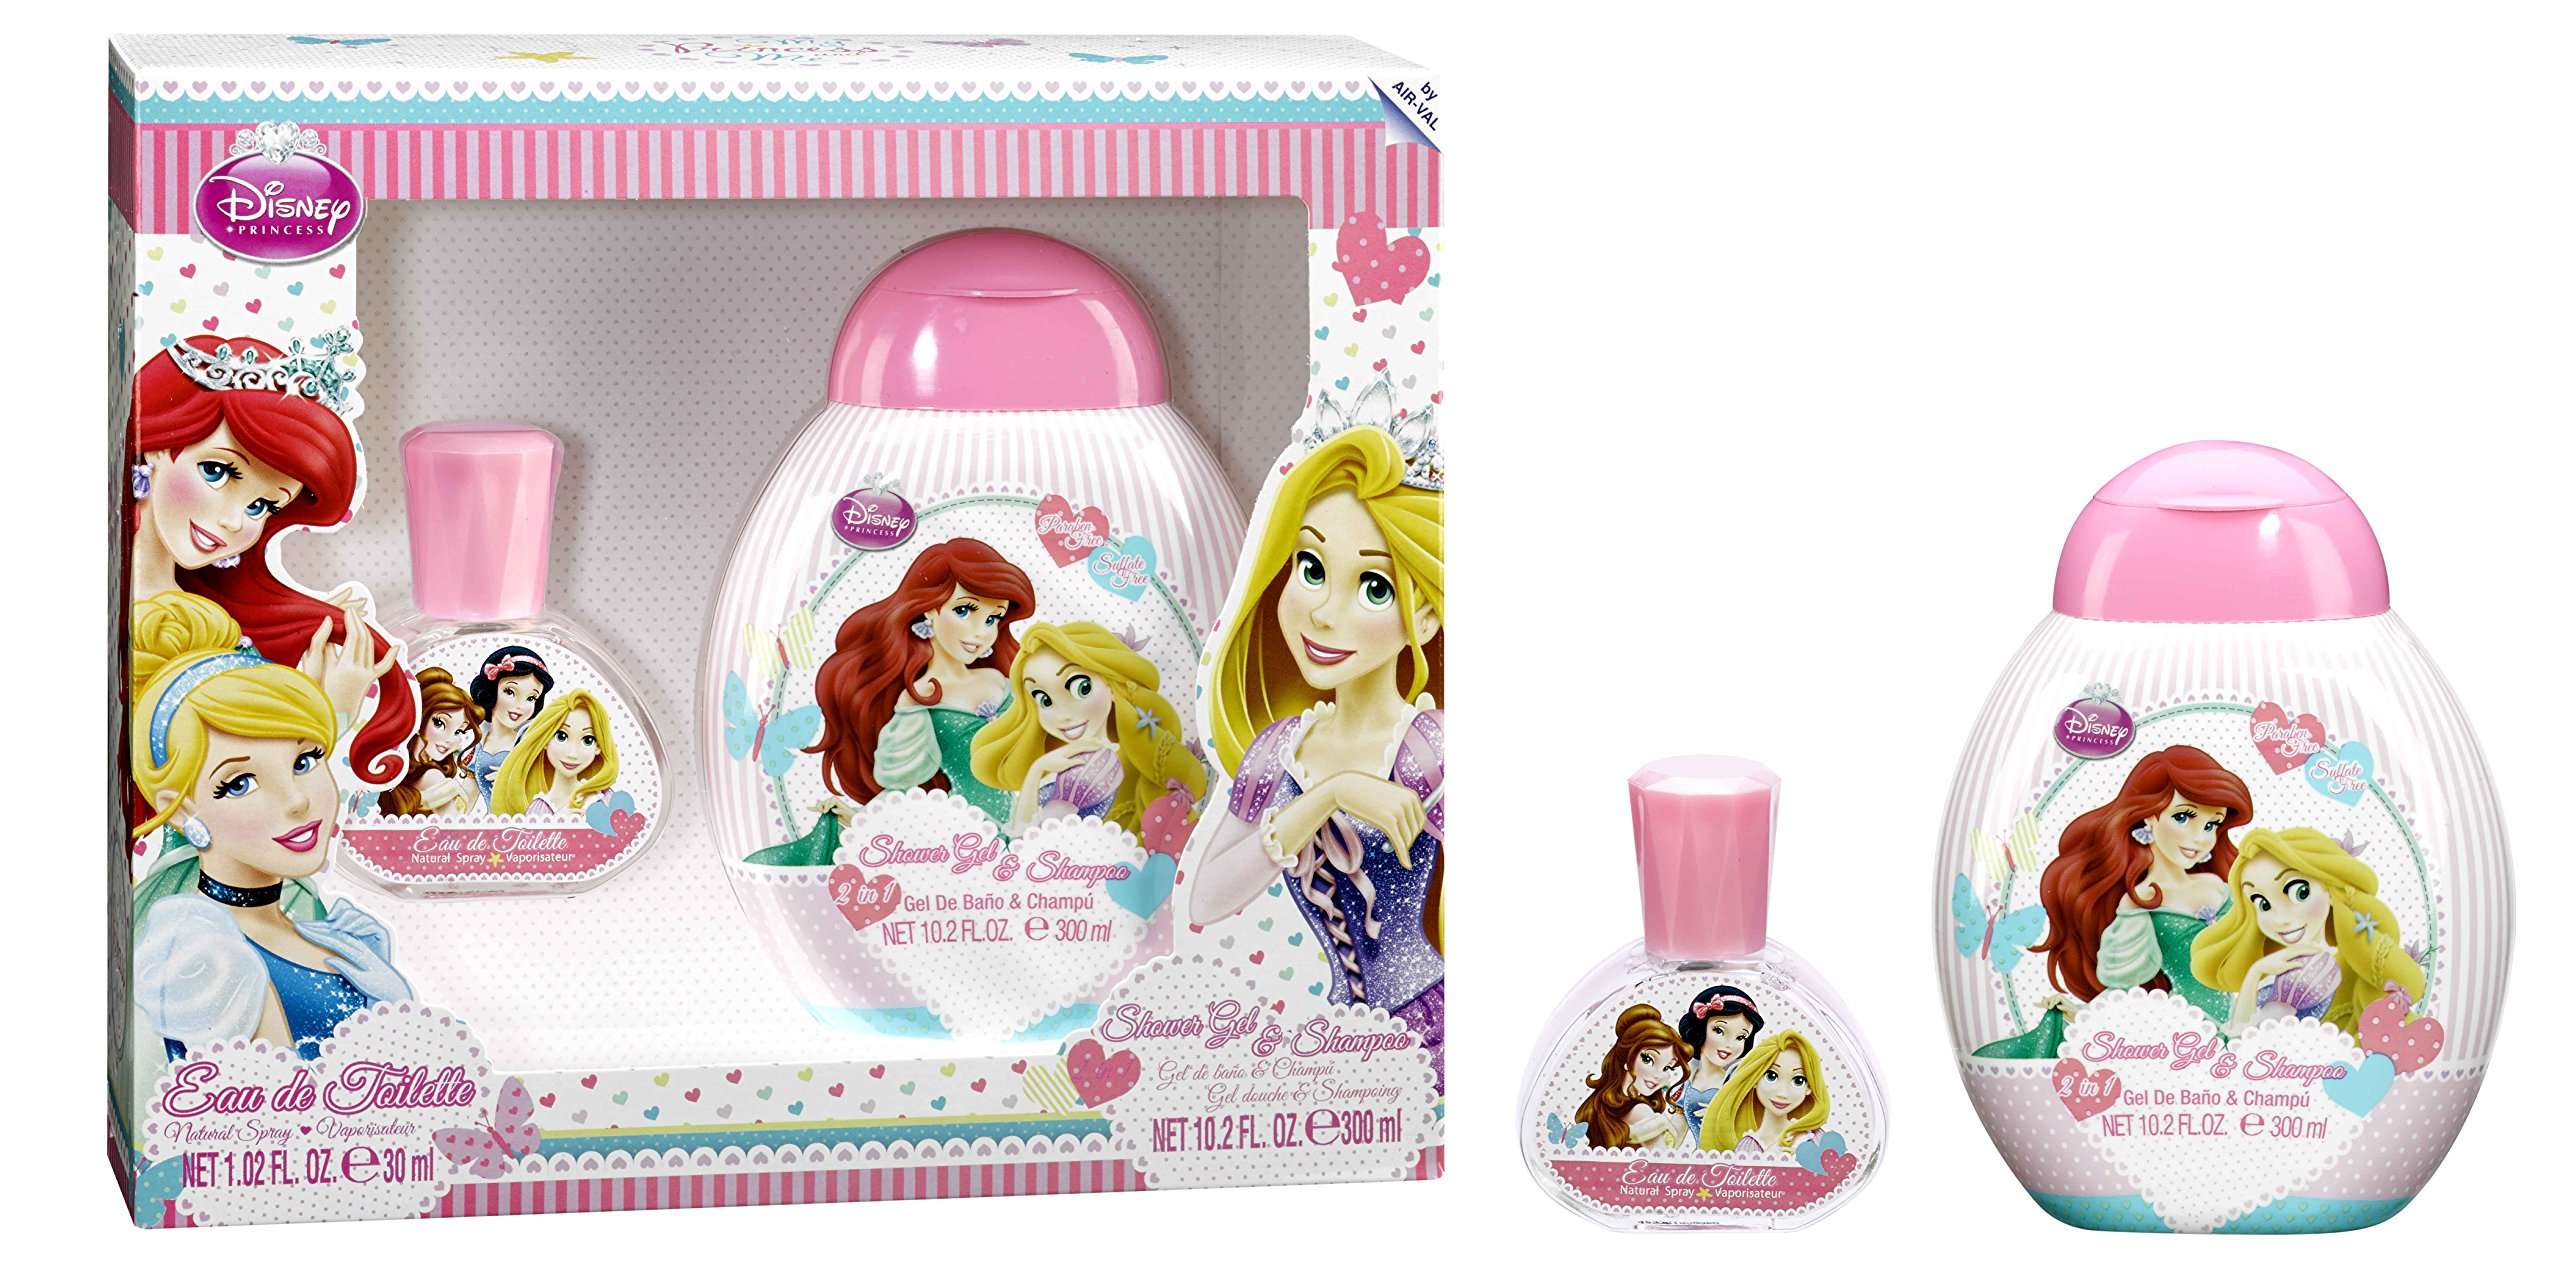 Disney for Kids 2 Piece Gift Set, Princess